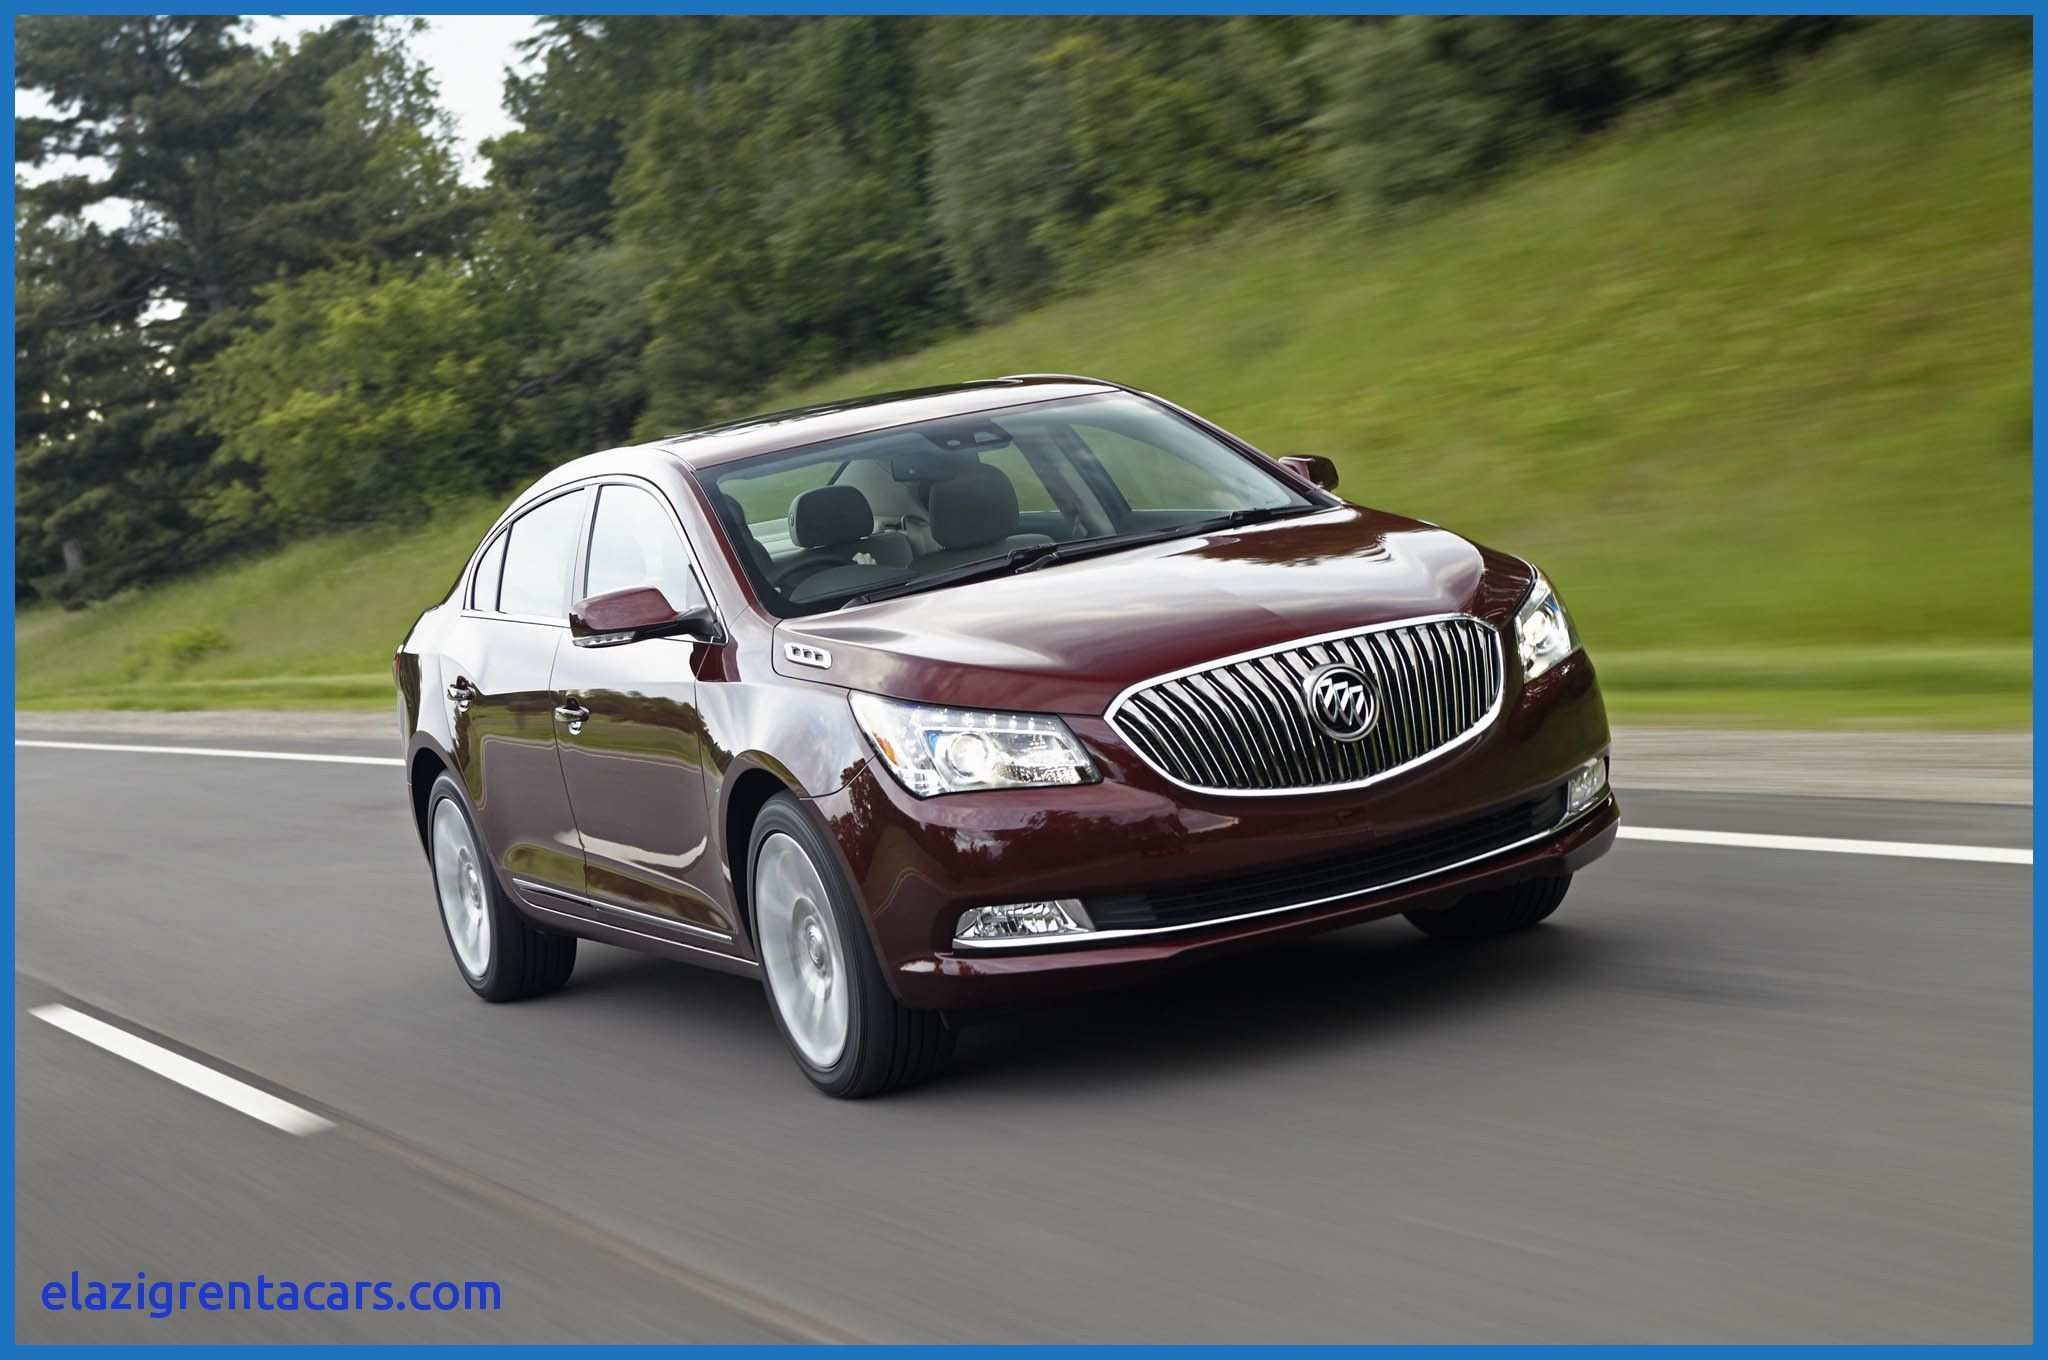 22 New 2020 Buick Enclave Spy Photos Spy Shoot with 2020 Buick Enclave Spy Photos